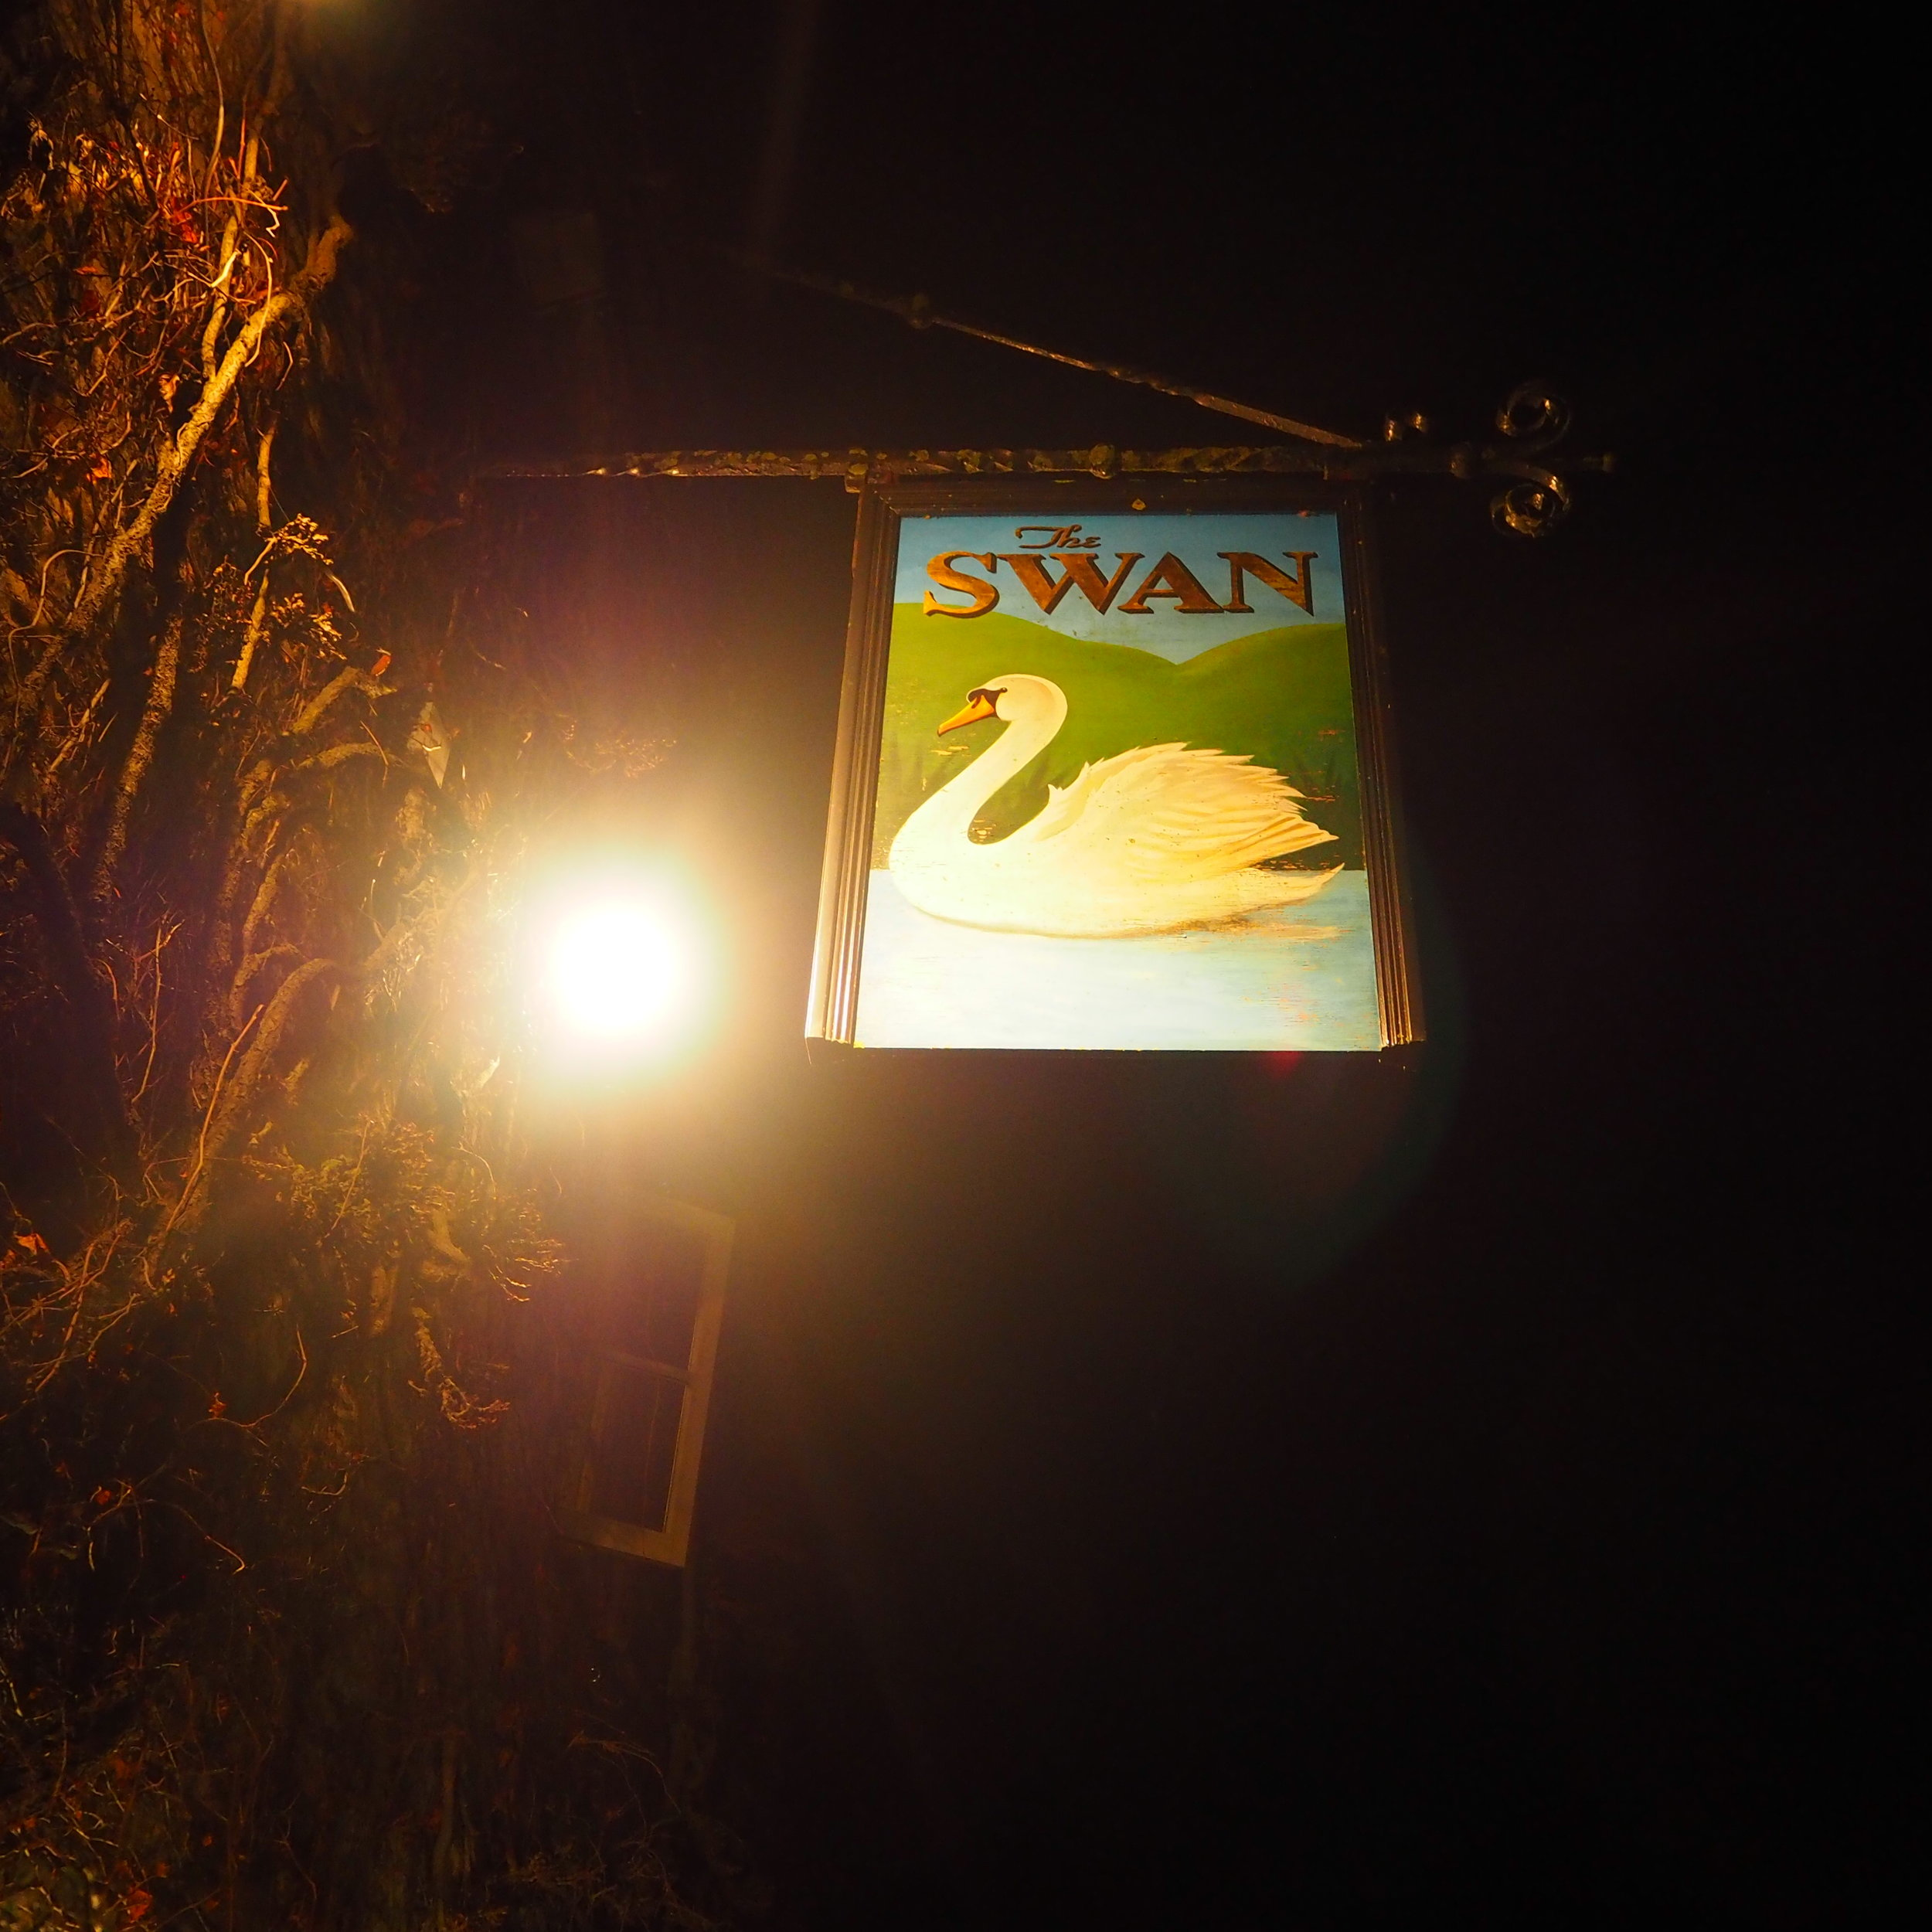 The Swan Pub in The Cotswolds